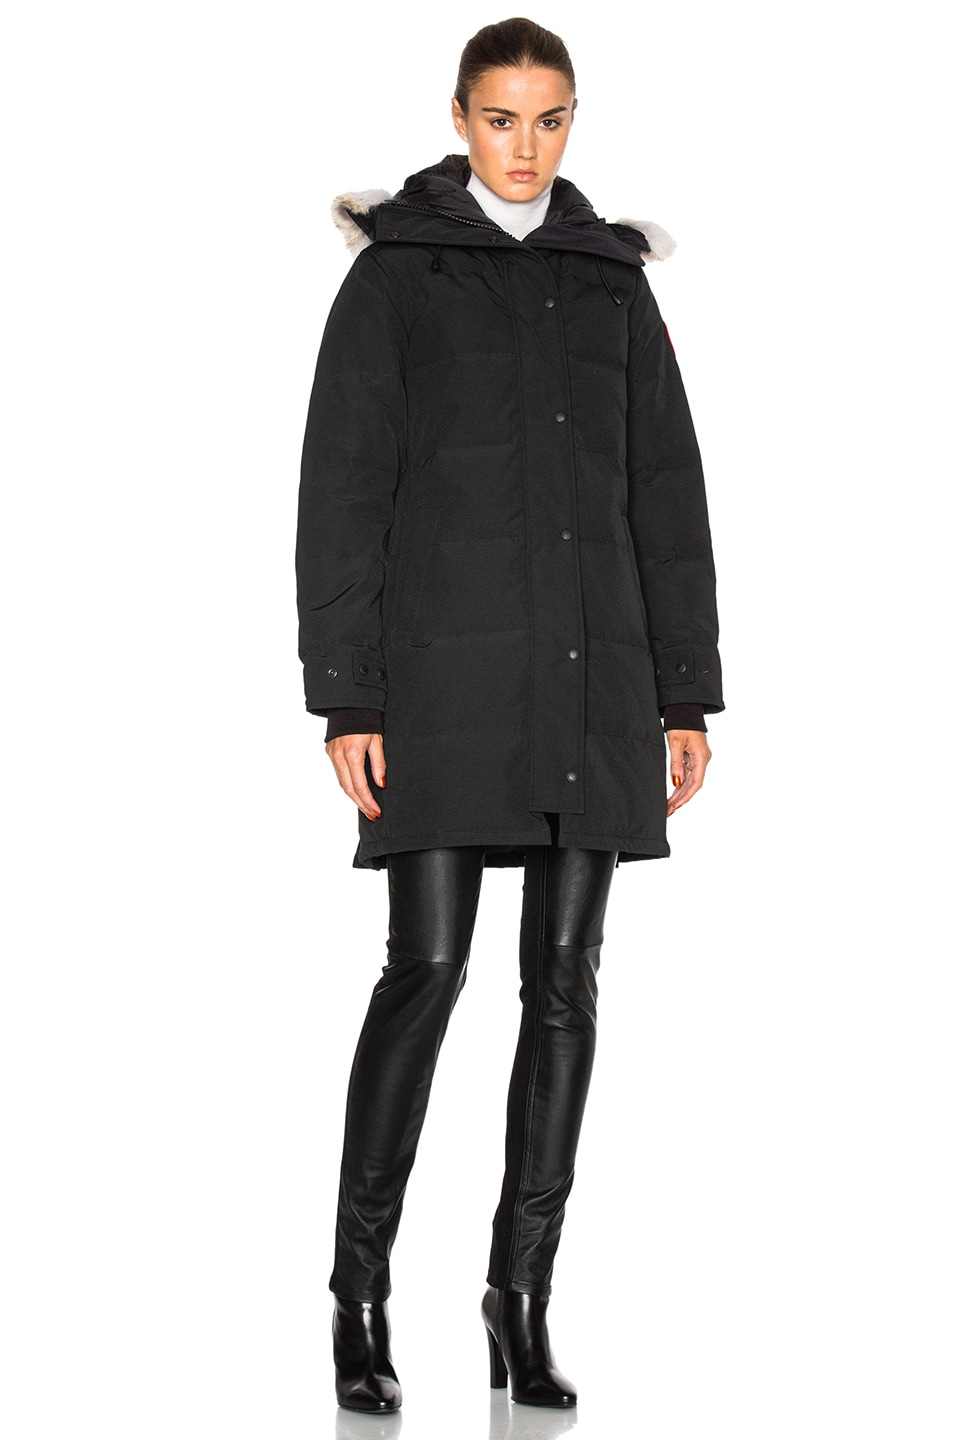 Image 2 of Canada Goose Shelburne Parka in Black